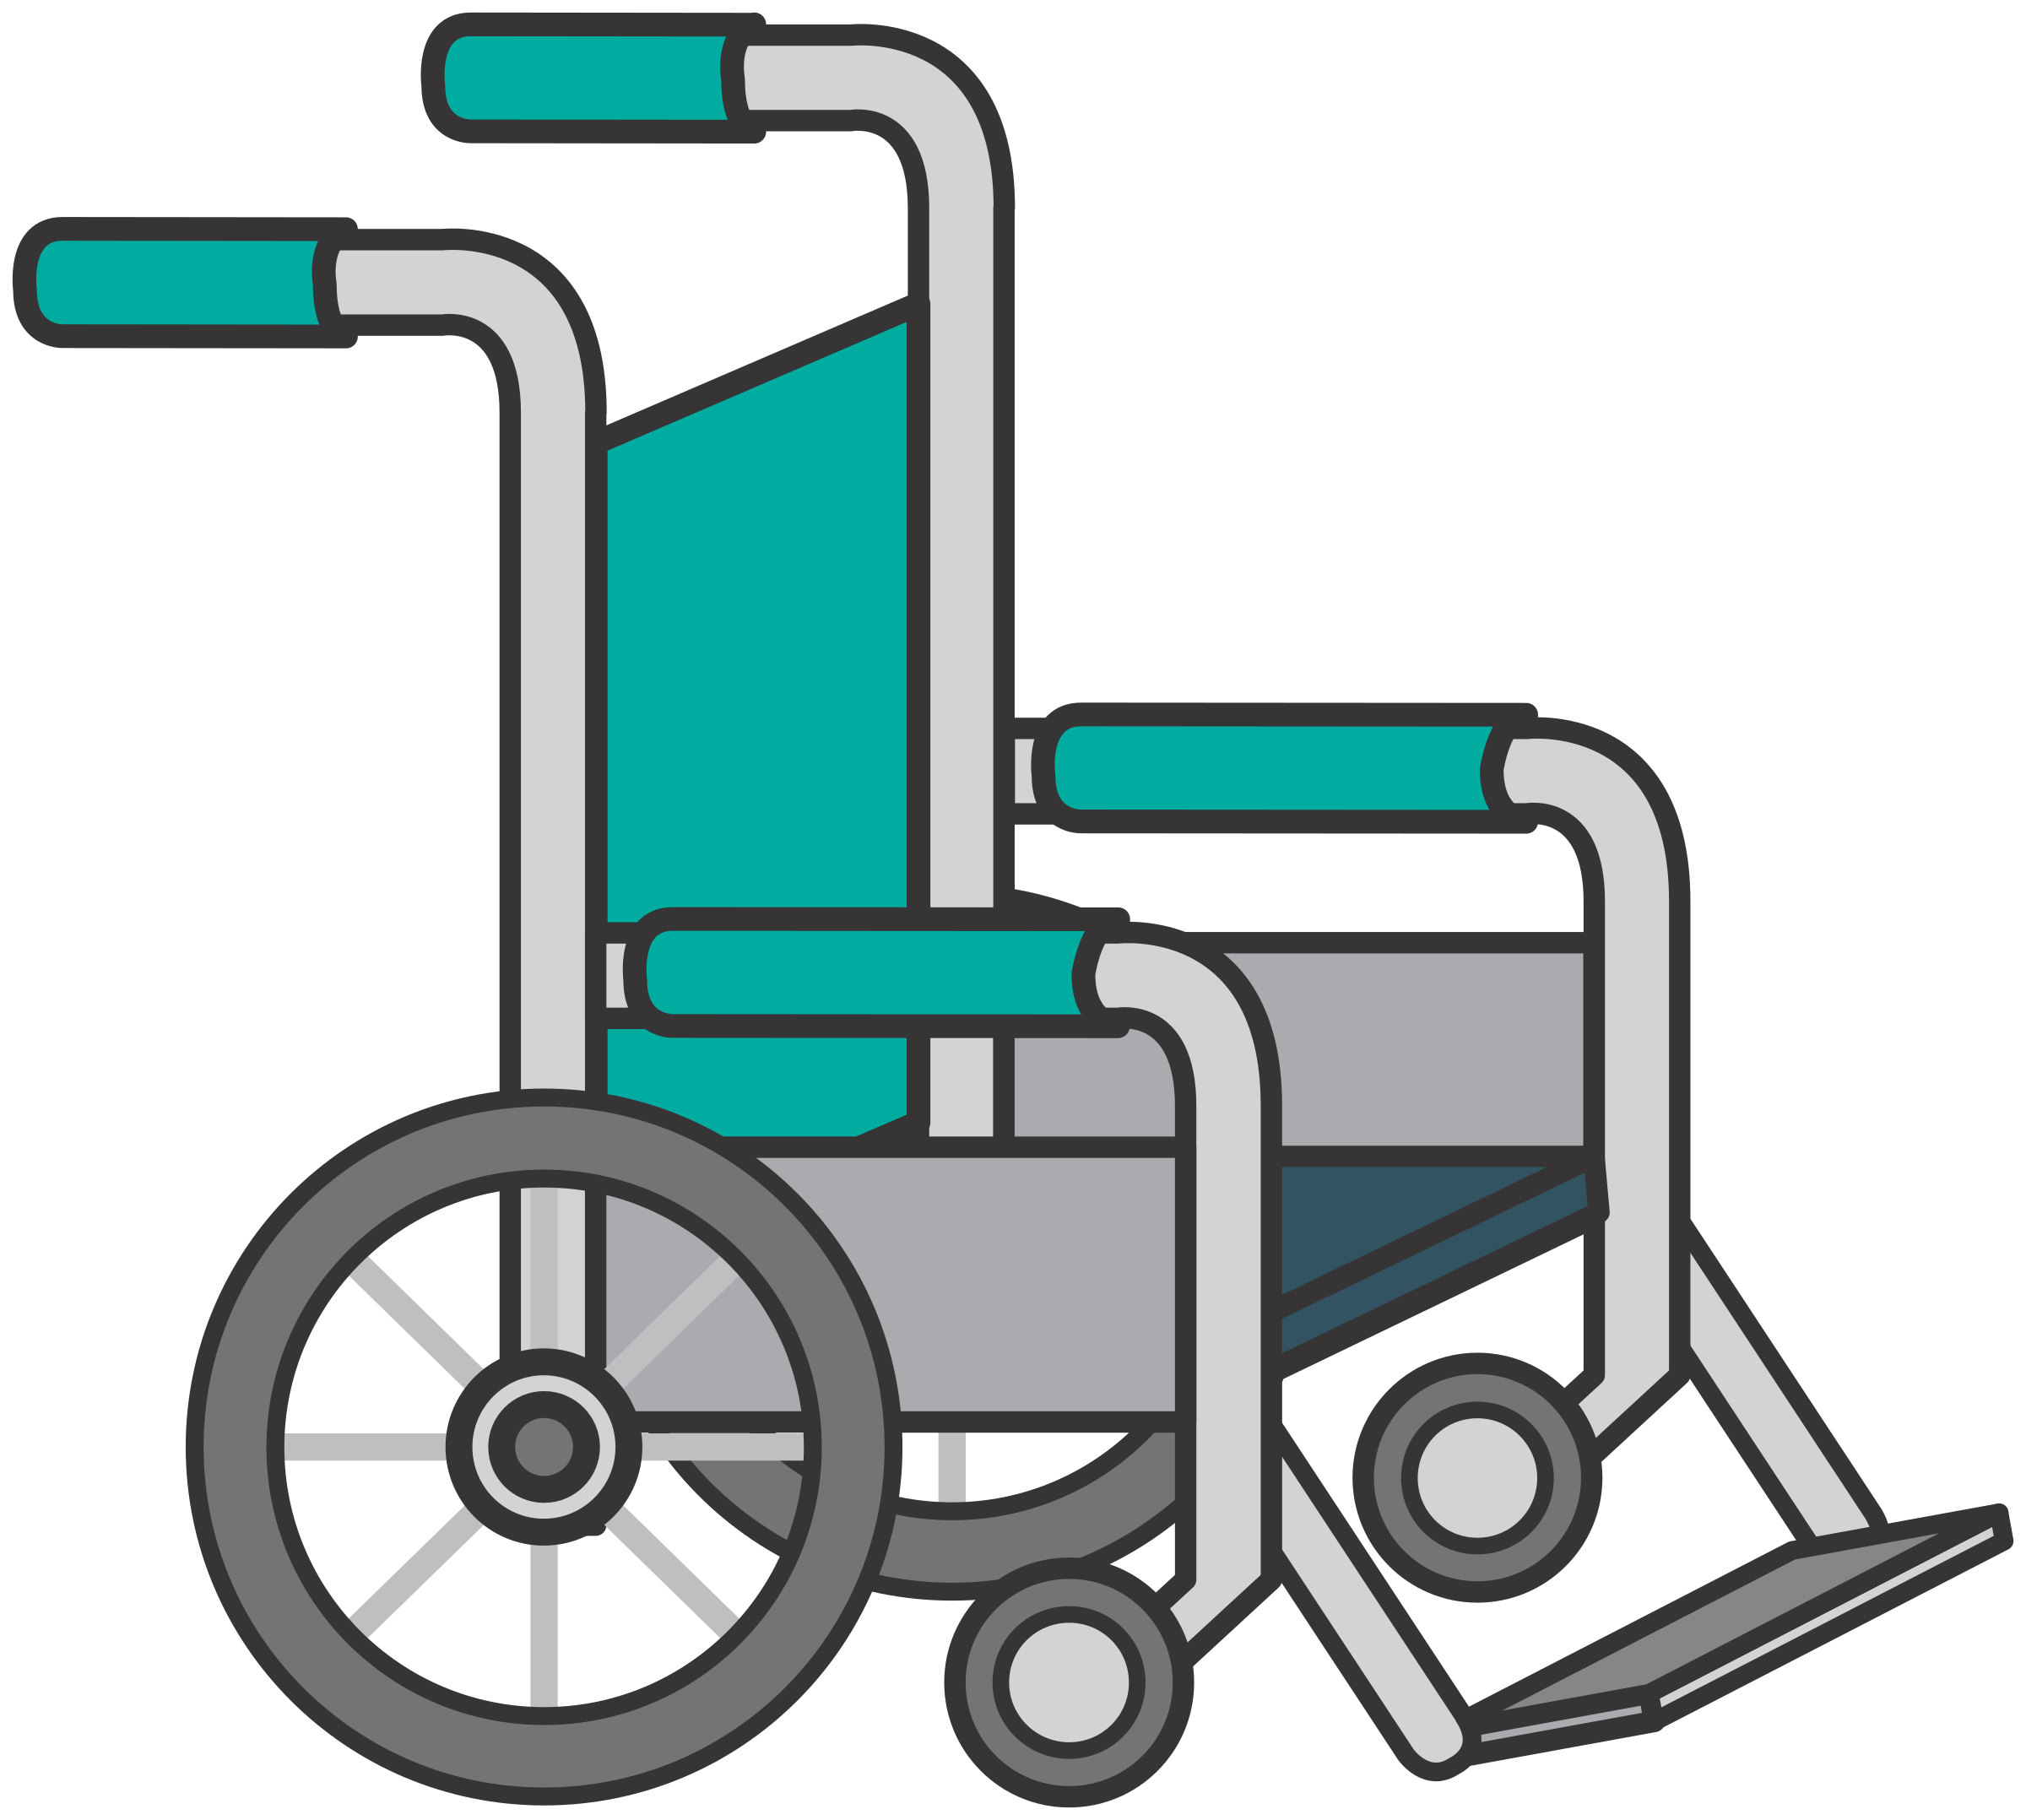 Wheelchair by Juhele